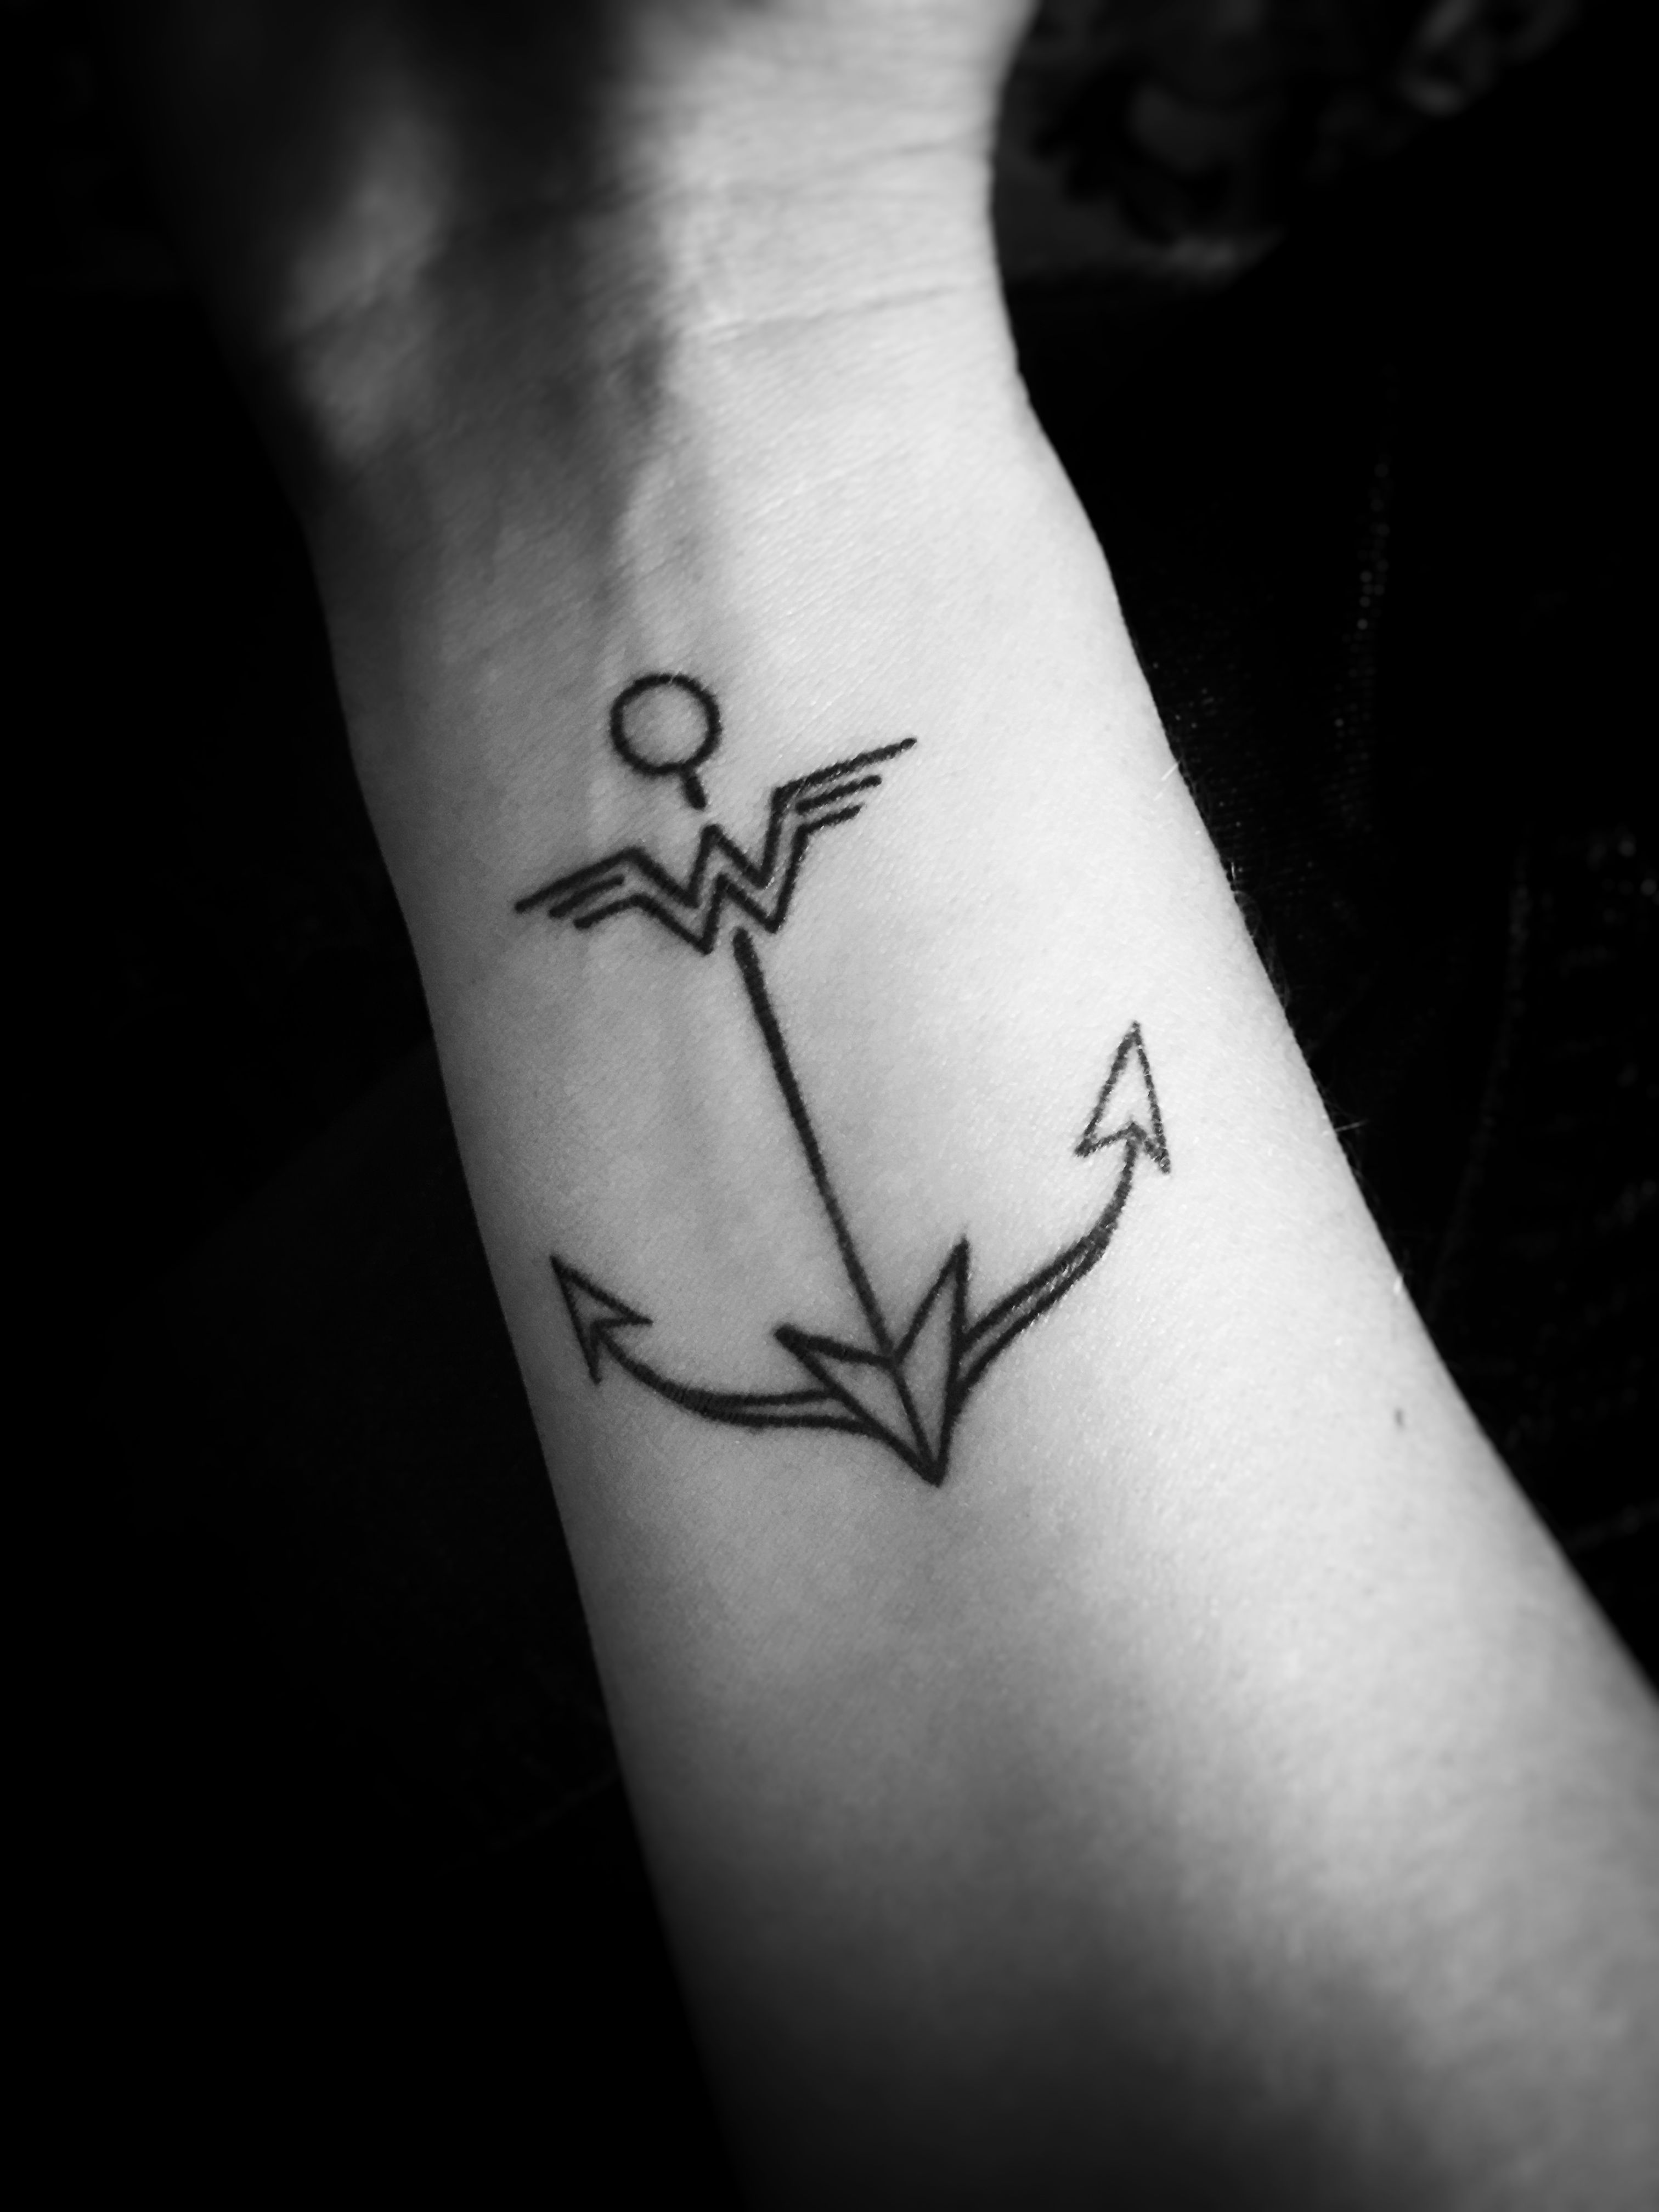 My first tattoo: --The anchor represents Hebrews 6:19, the scripture I meditate on most during my bouts with anxiety/depression. --The arrow down the middle represents the people in my life who propel me forward. --The Wonder Woman symbol is the feather in the arrow and the top bar of the anchor...just because I love Wonder Woman!  Tattoo design by Russell Corbett at Hybrid Tattoo in Penn Hills, PA